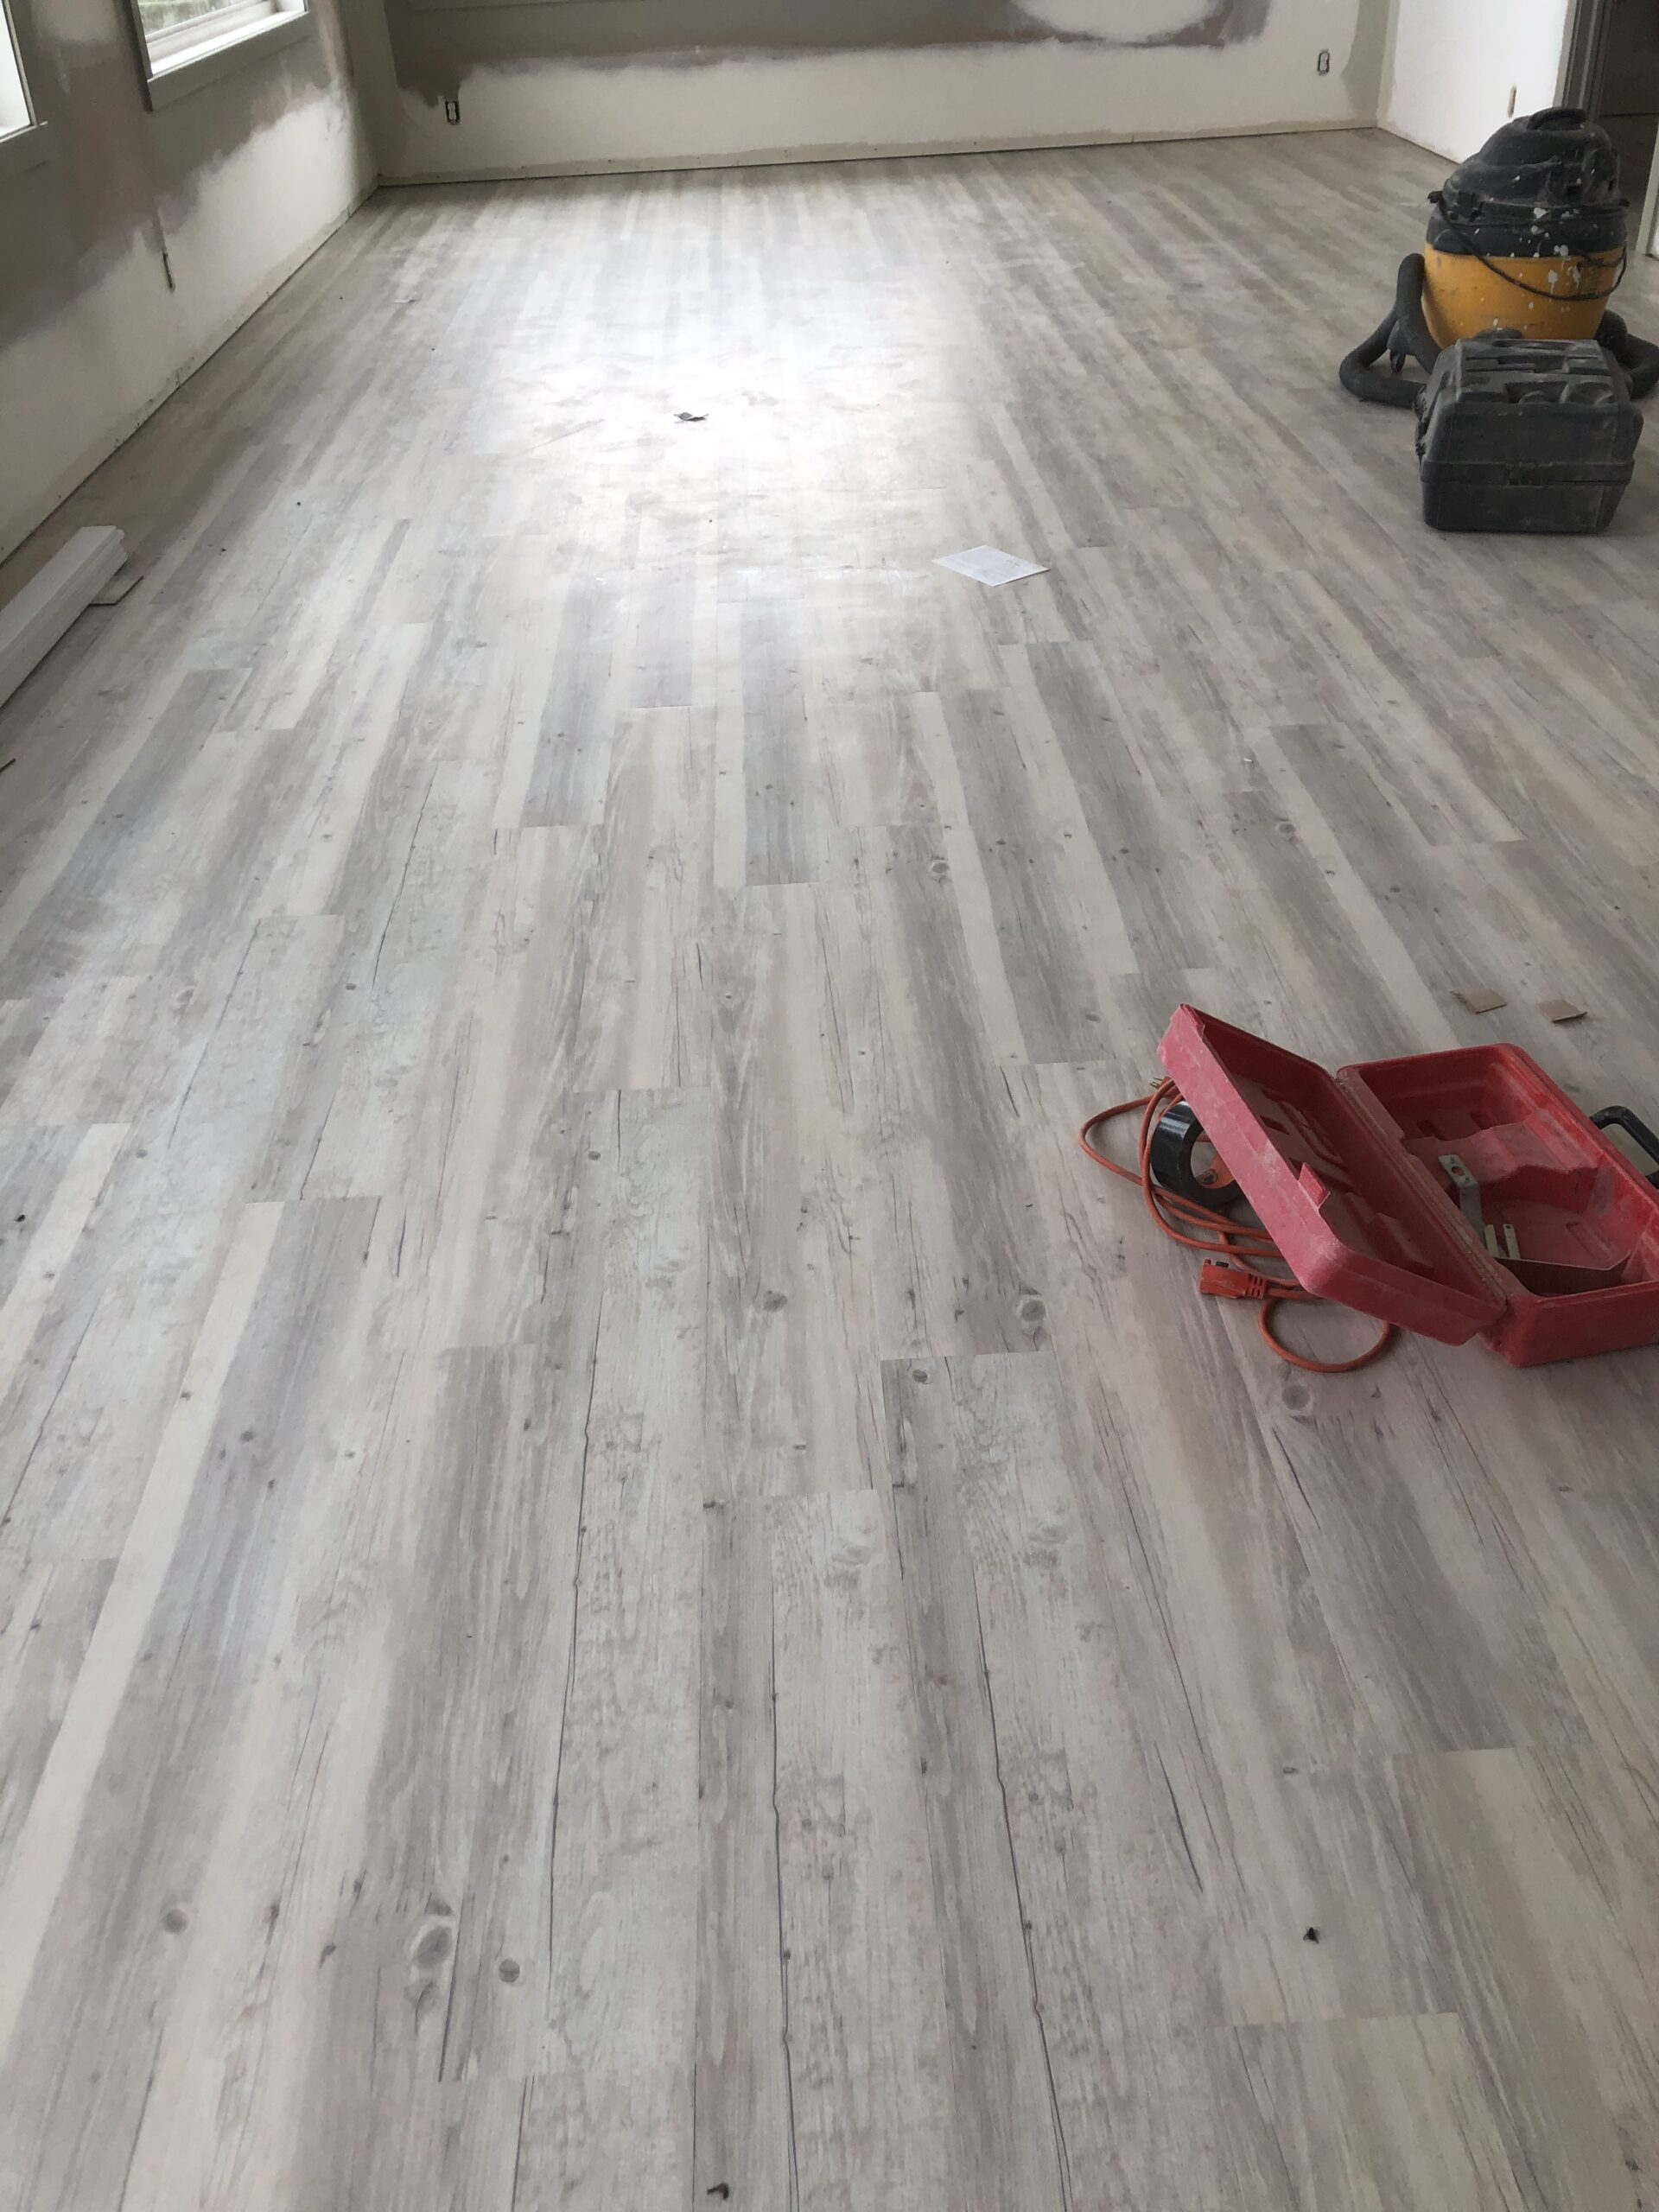 New flooring in Segue Home